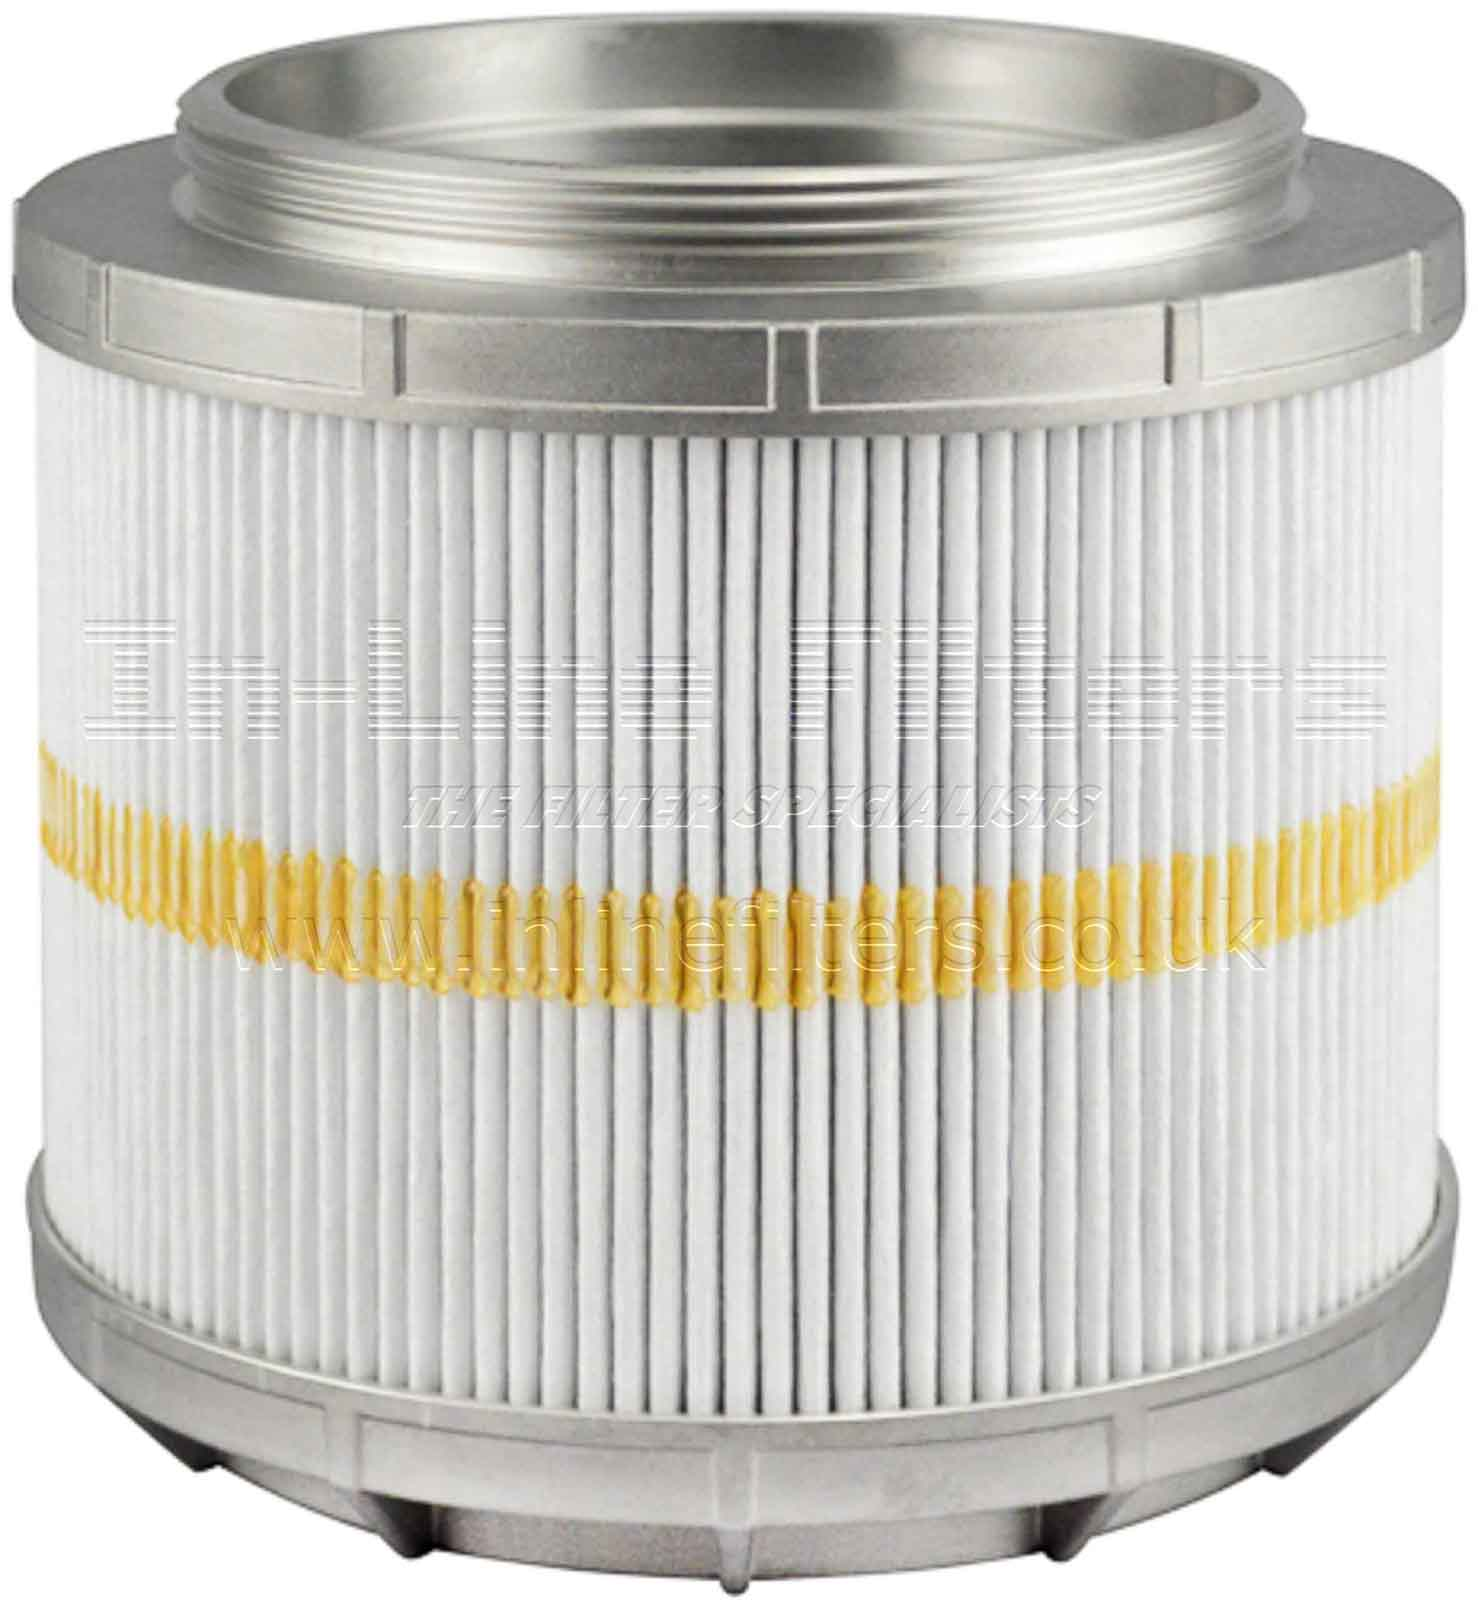 FBW-PT9476-MPG FILTER-Hydraulic(Brand Specific-Baldwin PT9476-MPG) - Click Image to Close